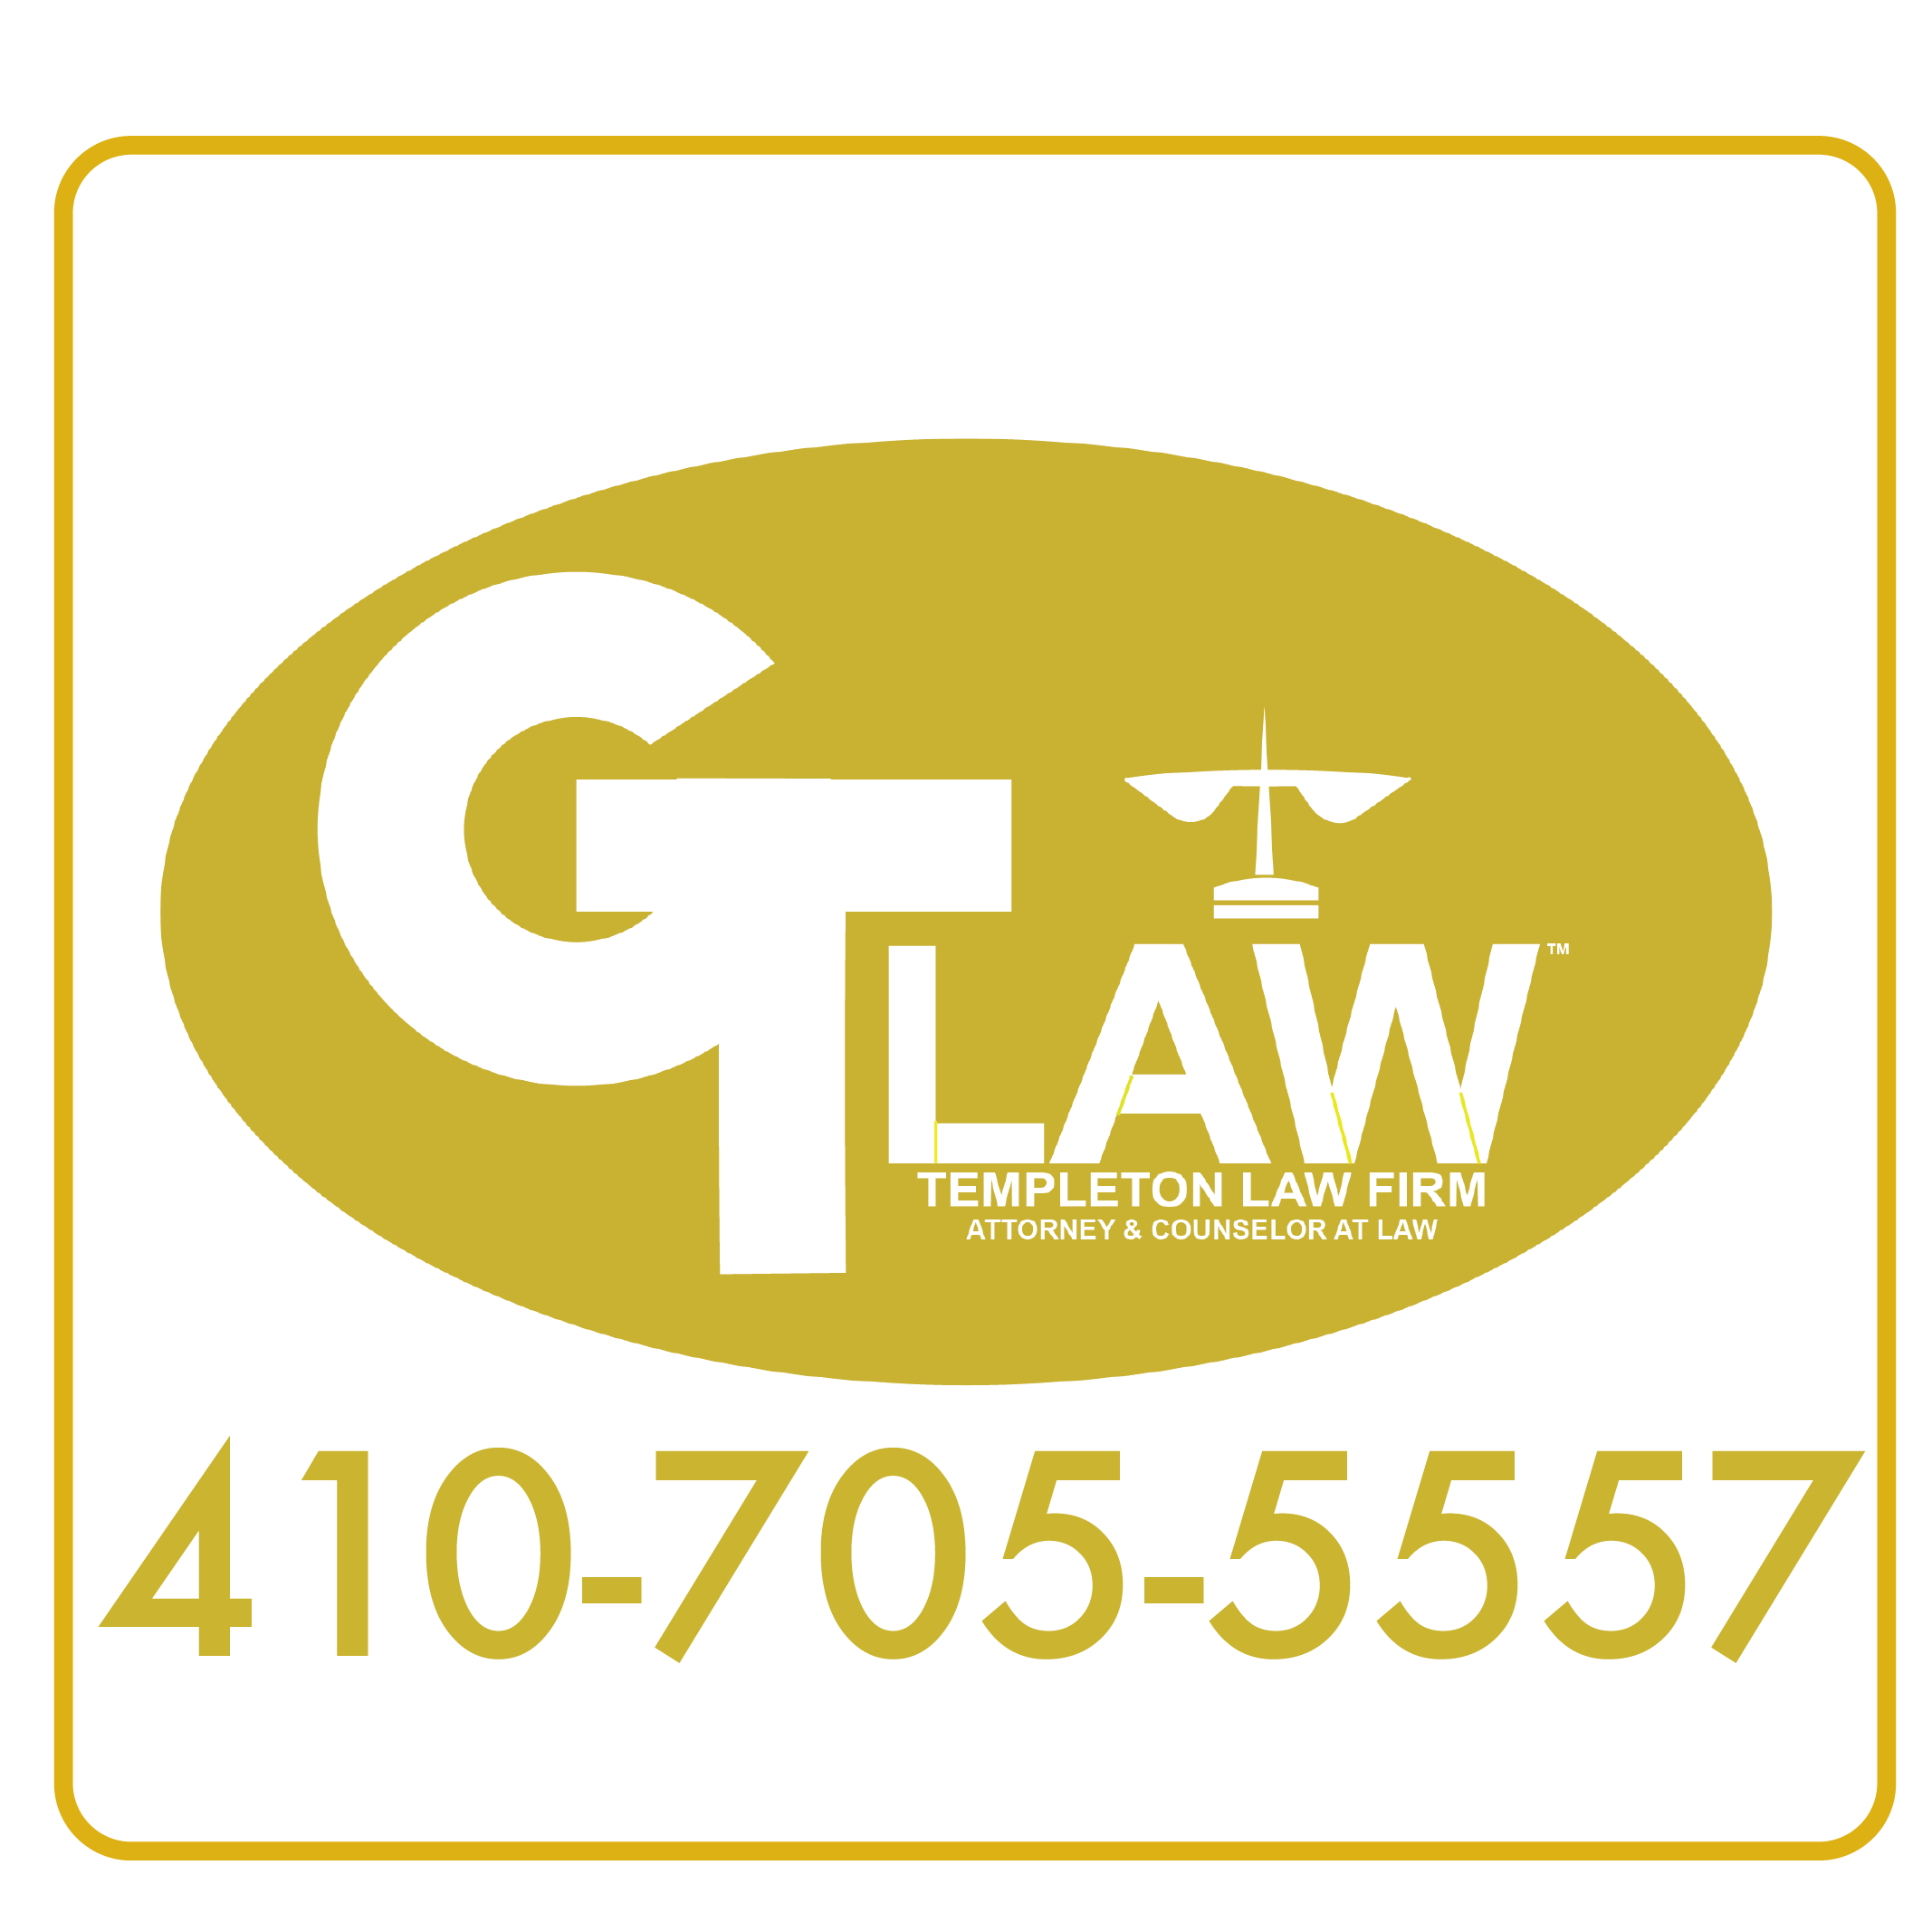 GT LAW Firm White ltrs GOLDNumber-01-01